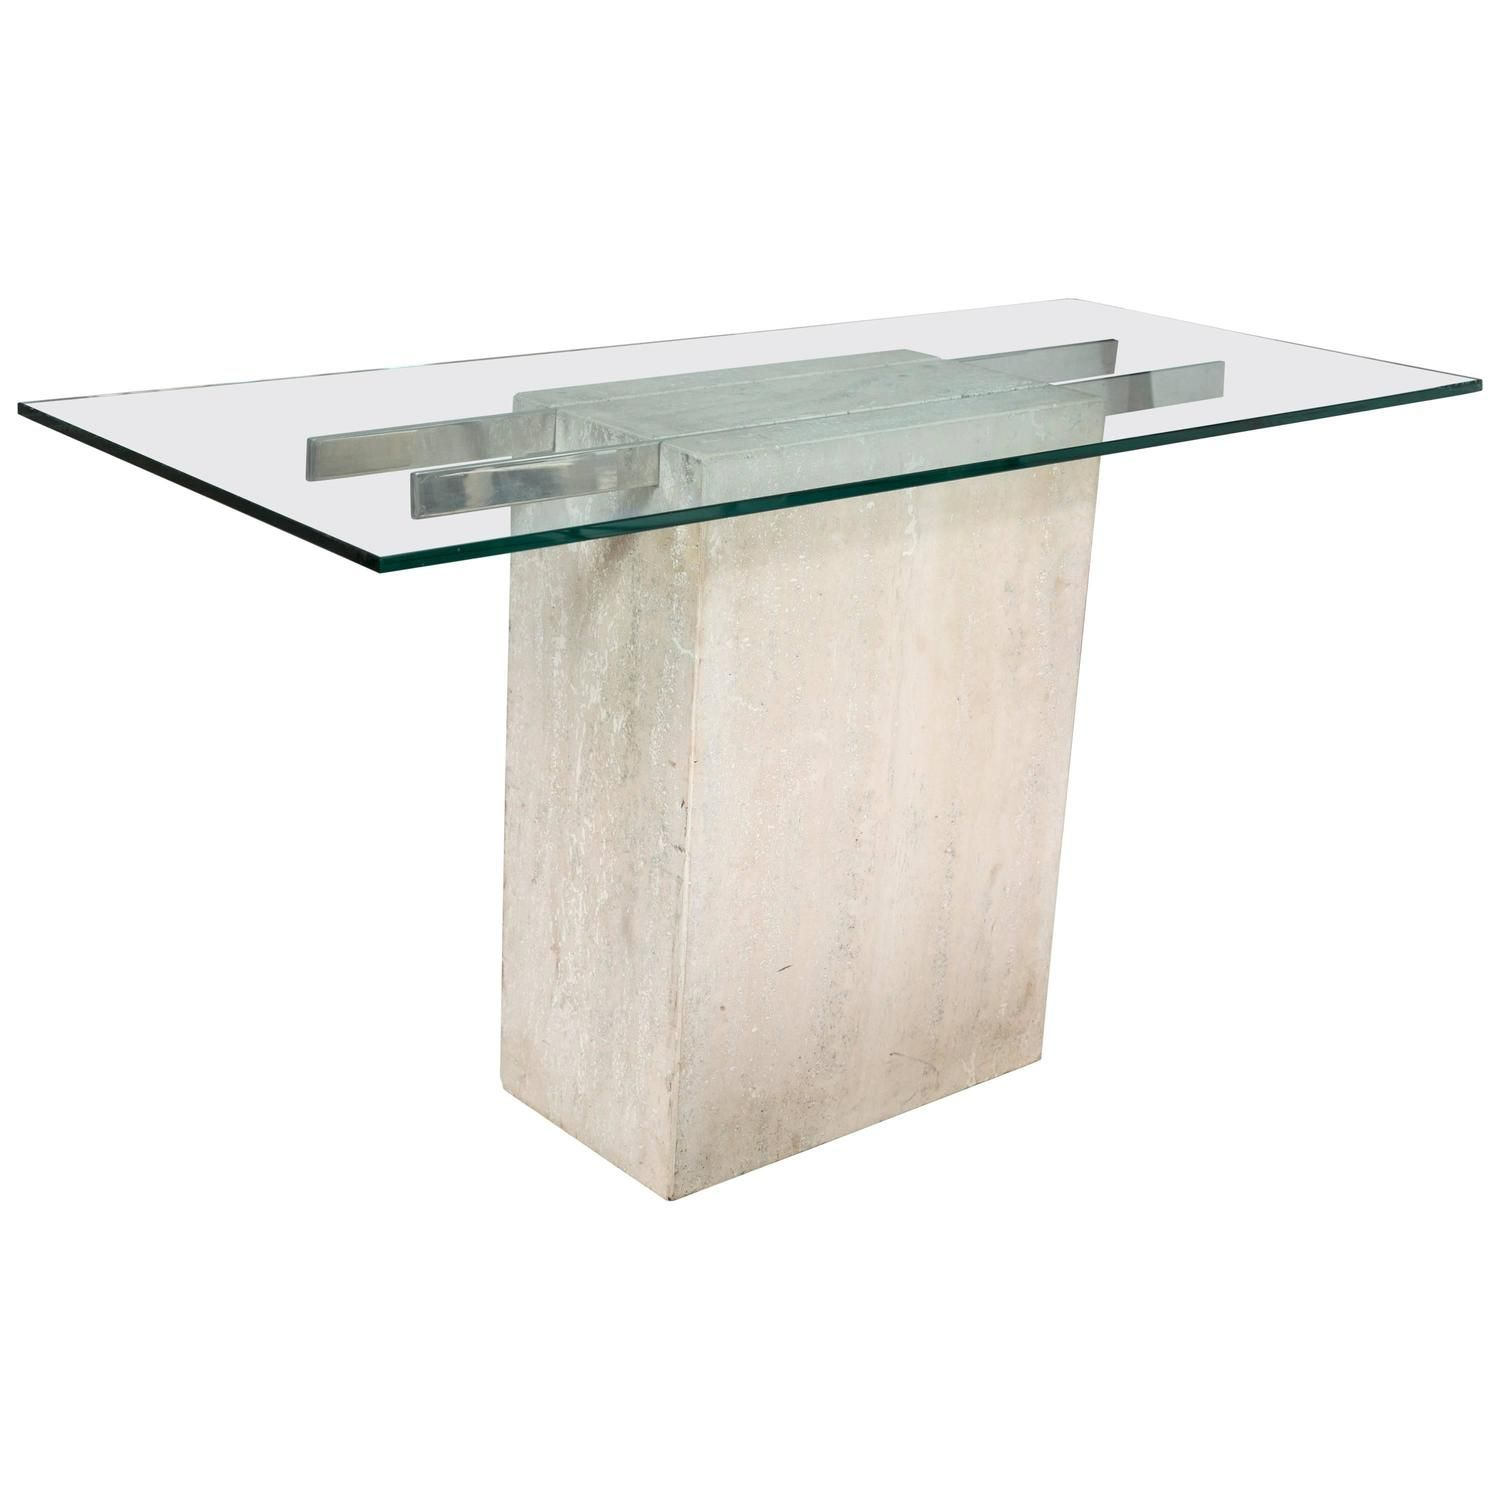 Travertine And Chrome Console Table By Ello Furniture